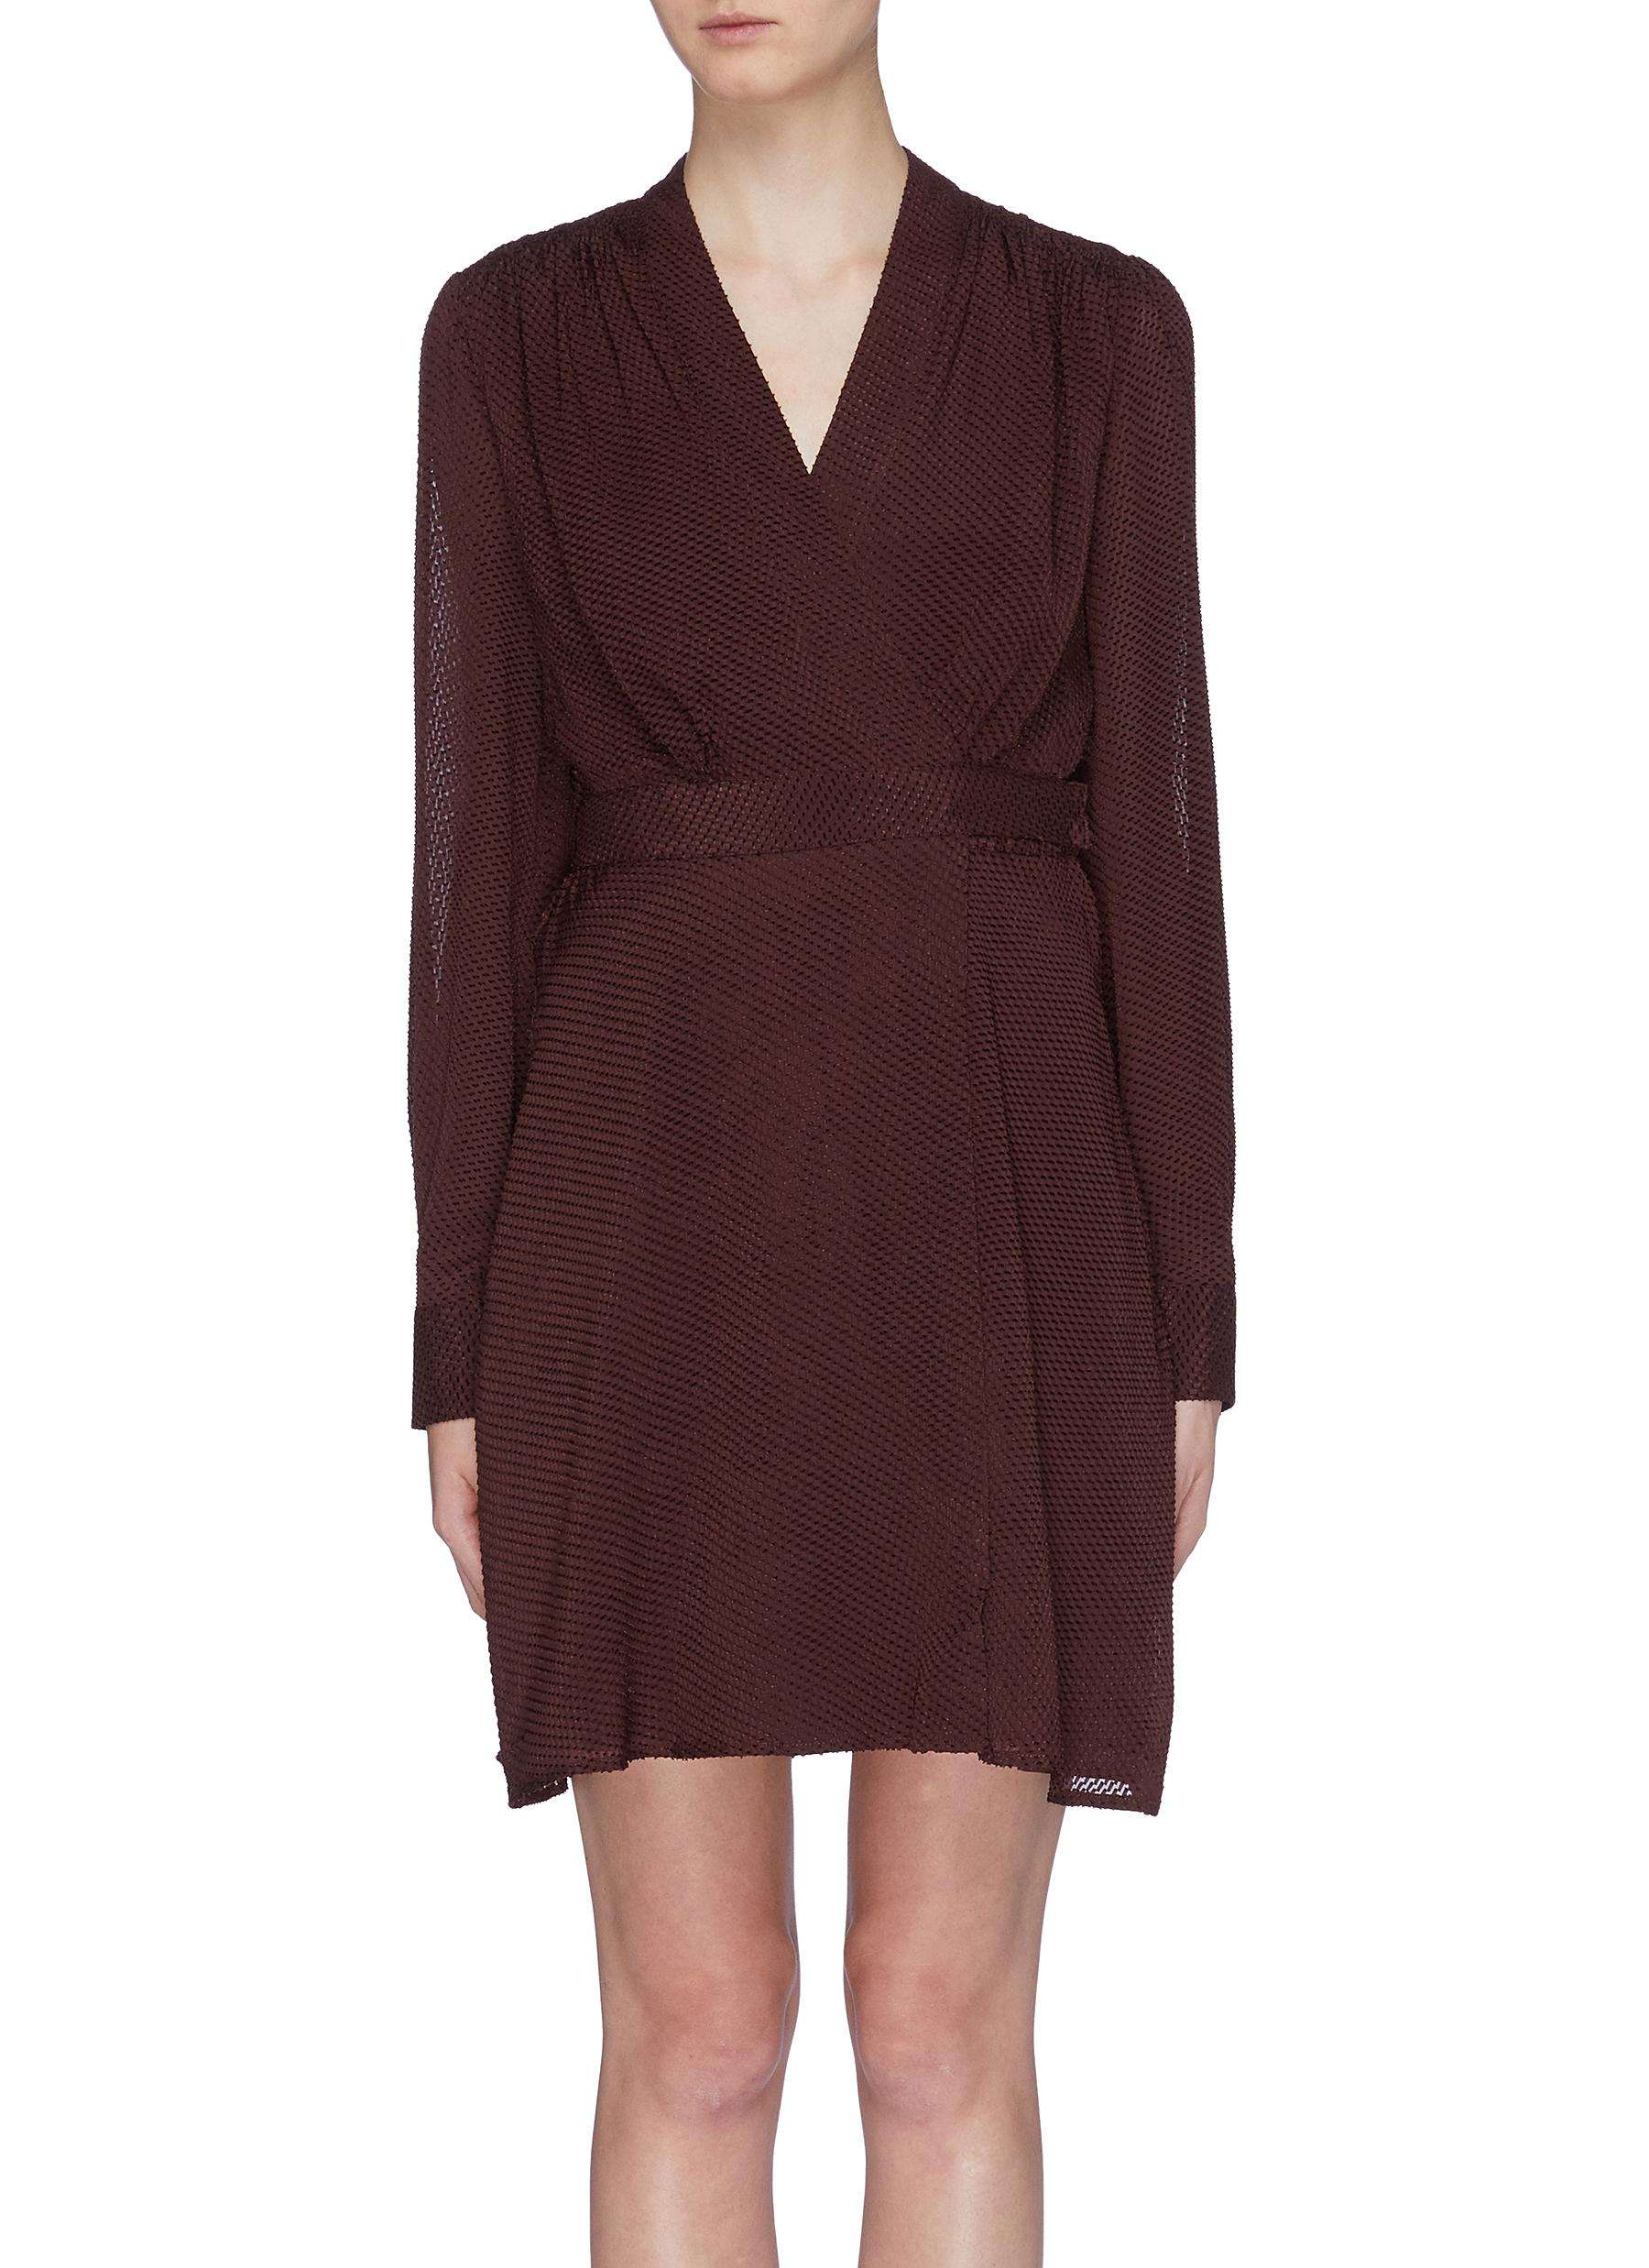 Allaire belted silk blend wrap dress by Equipment